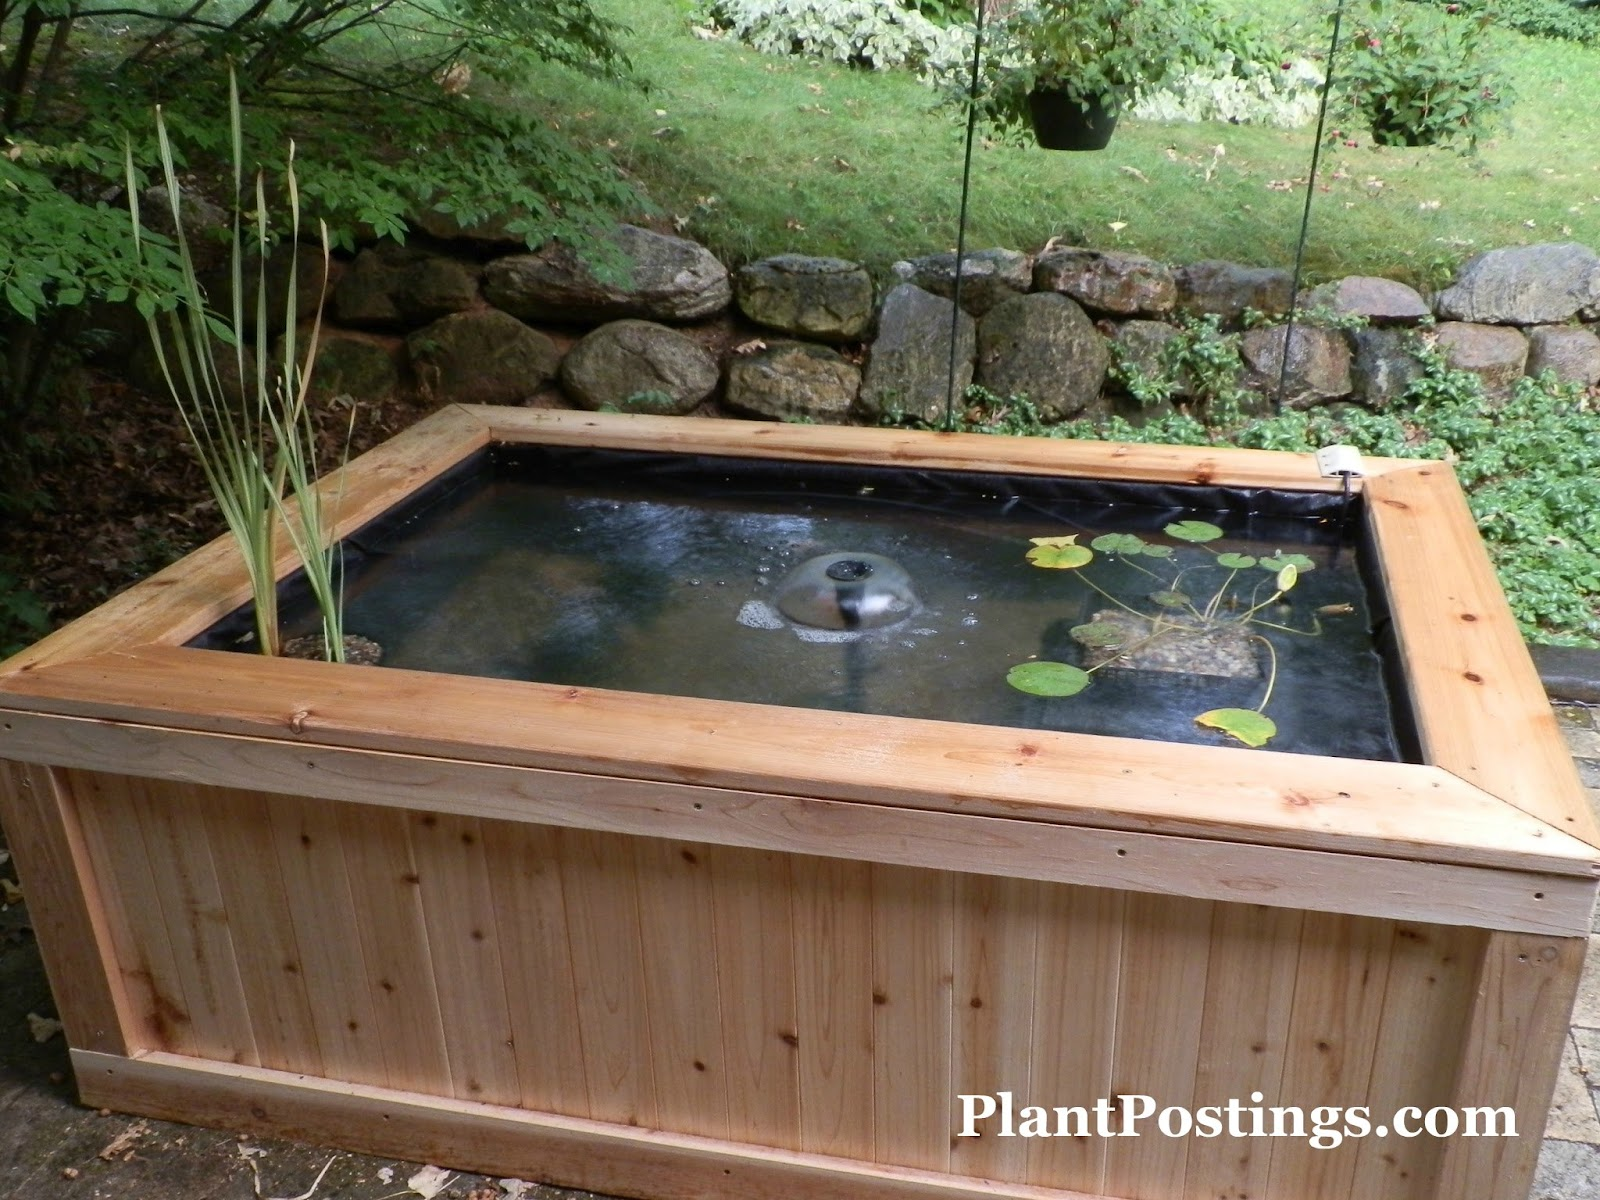 Plantpostings how to make an above ground pond for Above ground pond ideas